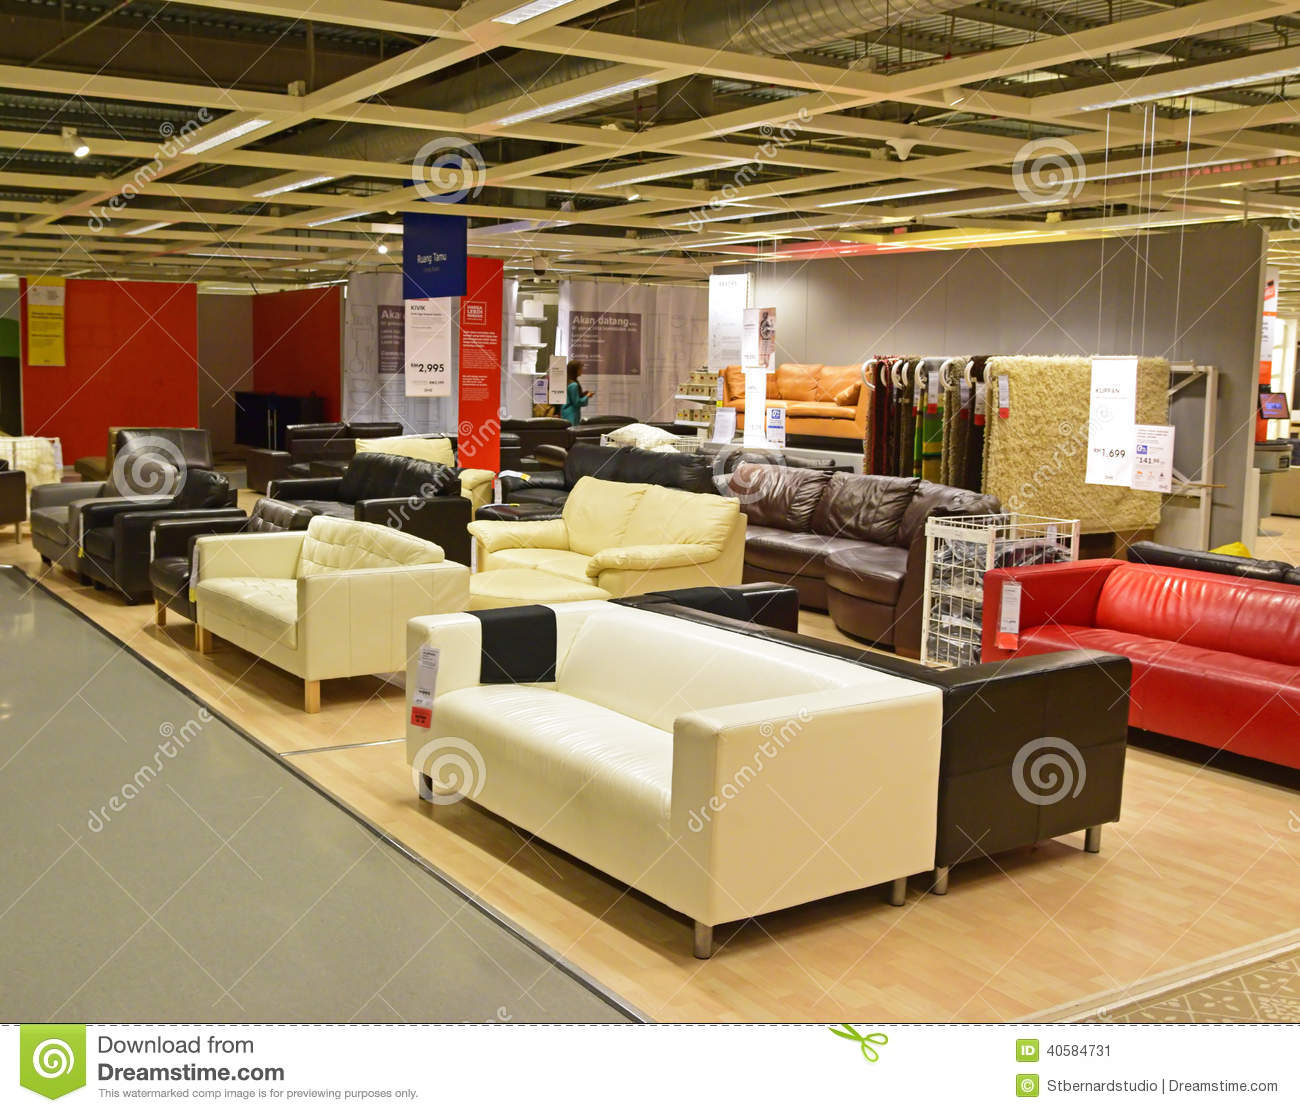 Sofa Shops: Various Design And Color For Sofa In Local Ikea Shop